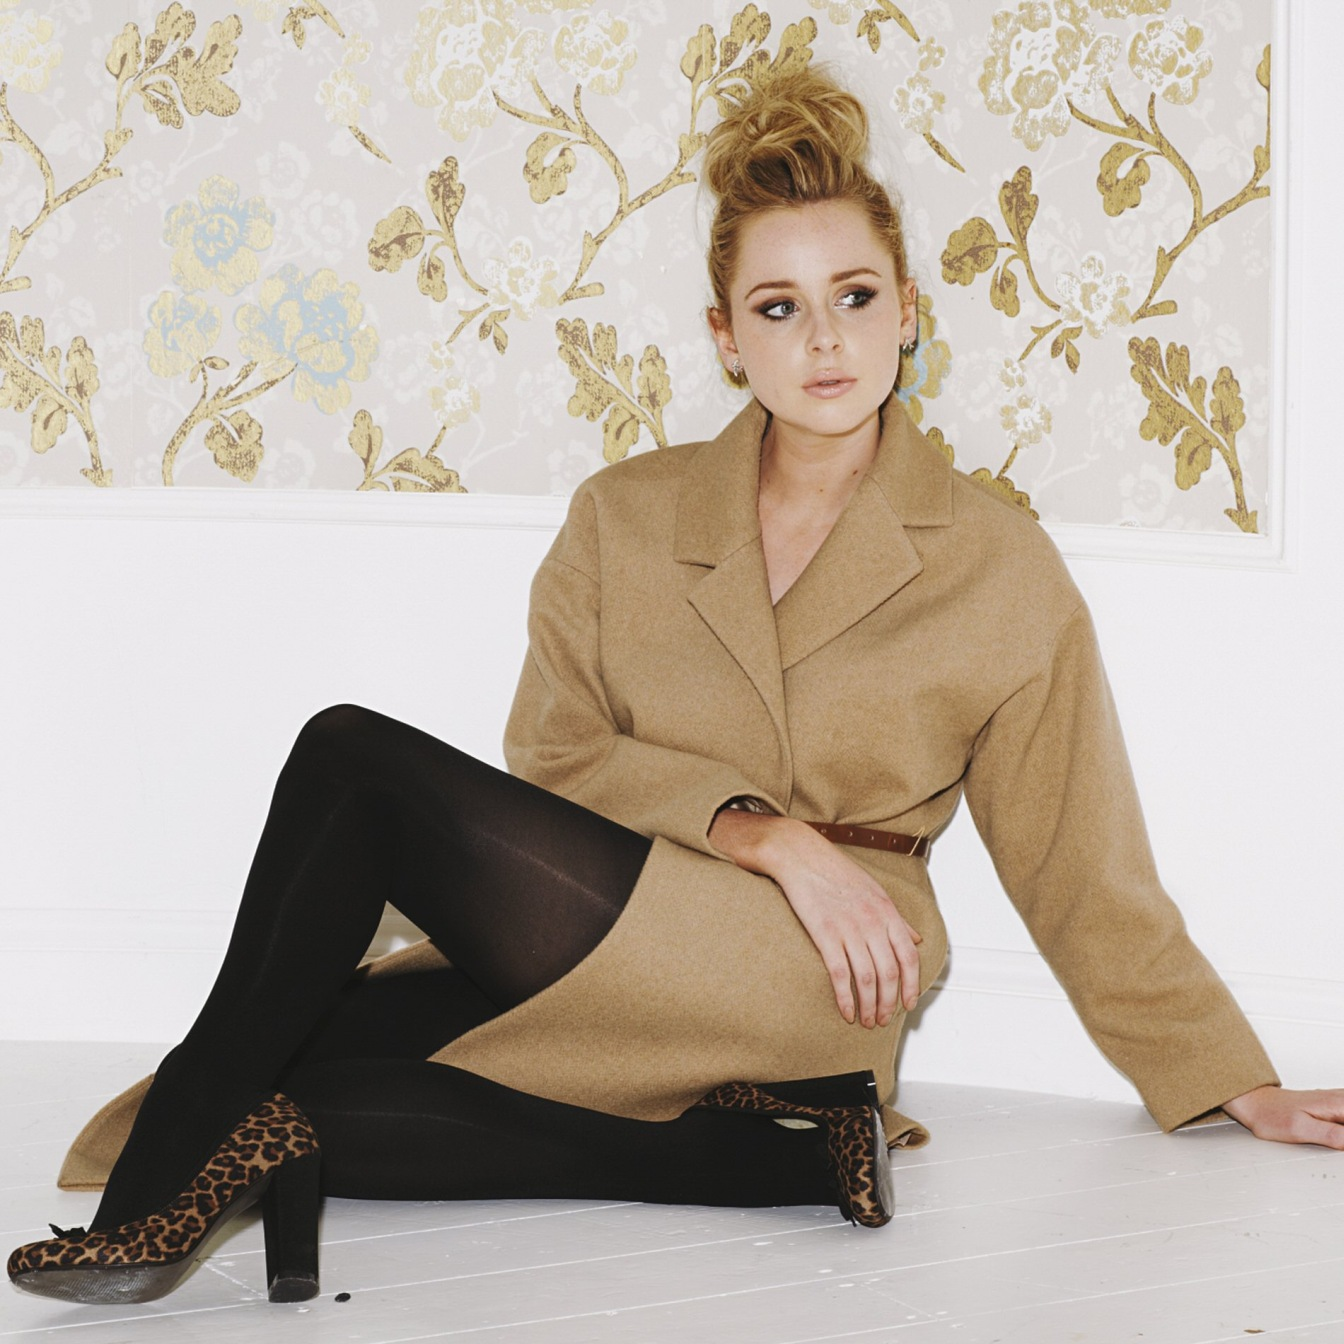 Celebrity Legs And Feet In Tights Diana Vickers Legs And